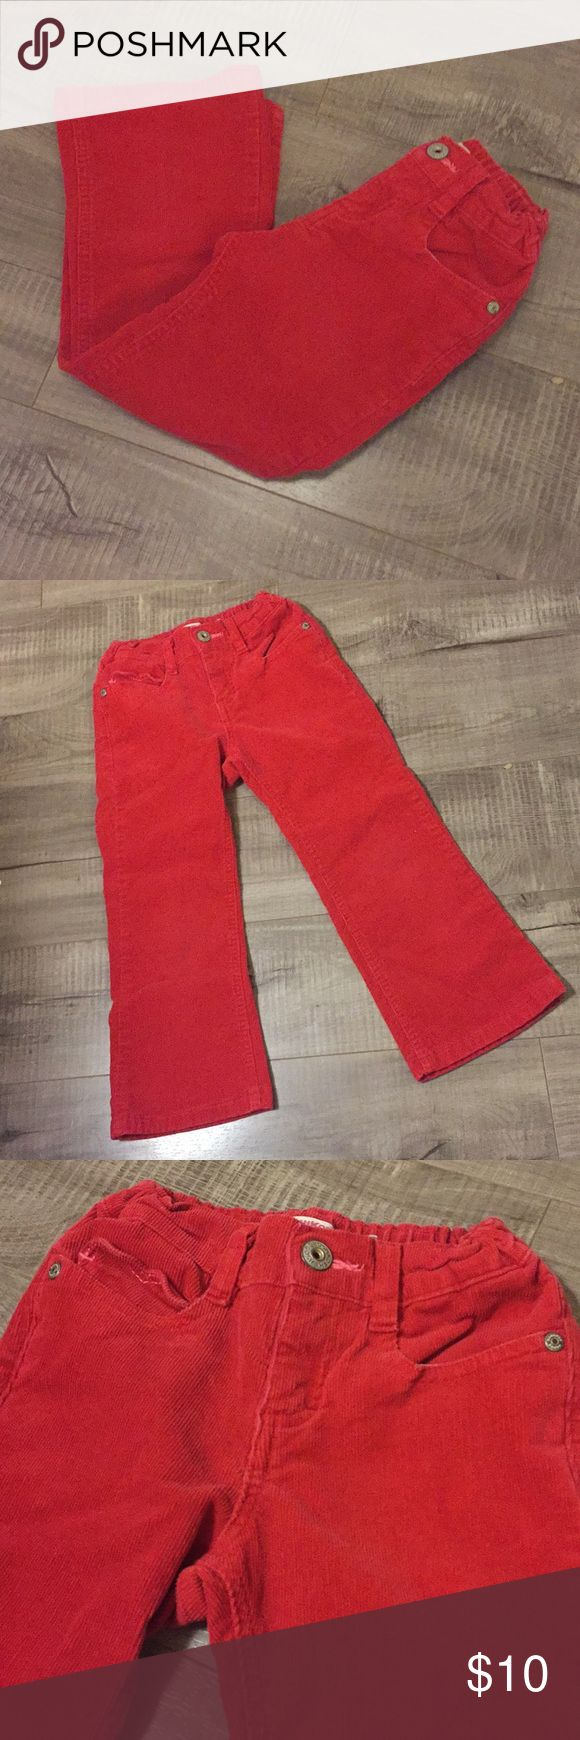 OshKosh Red Corduroy Girls Pants OshKosh B'gosh Red Corduroy Girls Pants Size 6X These pants are in excellent condition, no Stains, holes or fading  Bundle to save 20% & more! I always ship in 1-2 days ❤️❤️ OshKosh B'gosh Bottoms